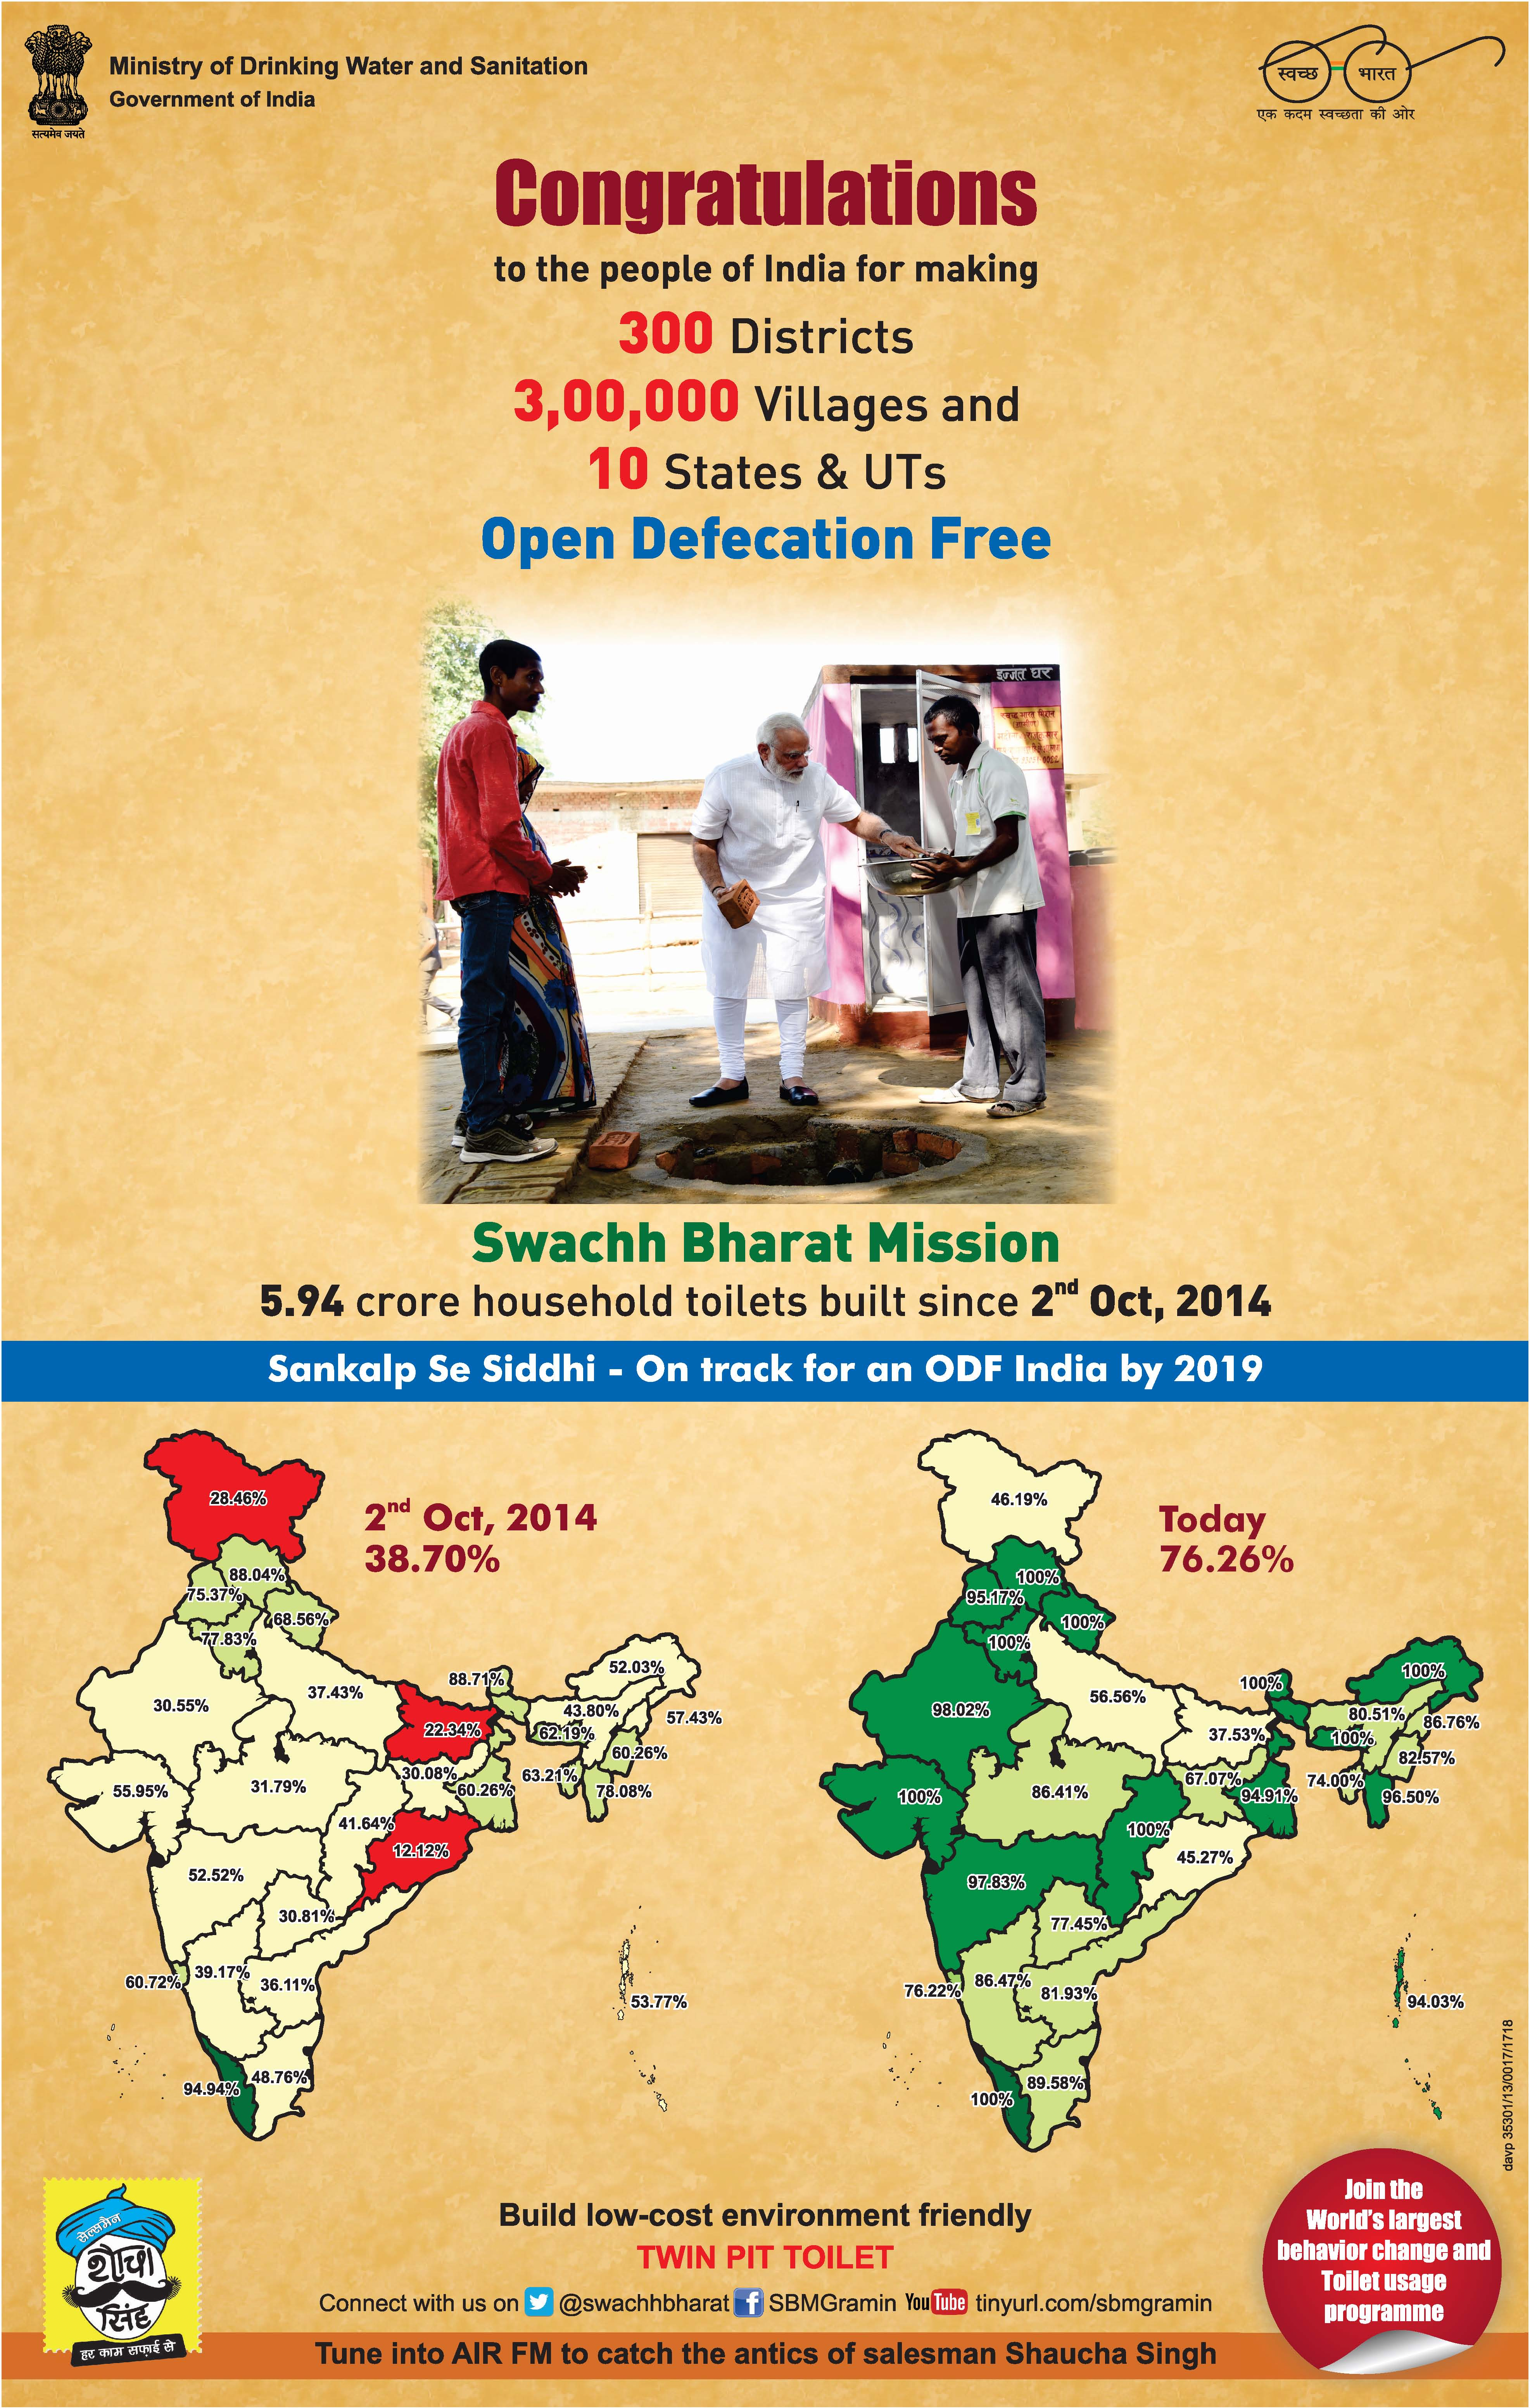 Swachh Bharat Mission picks up great momentum & on way to target